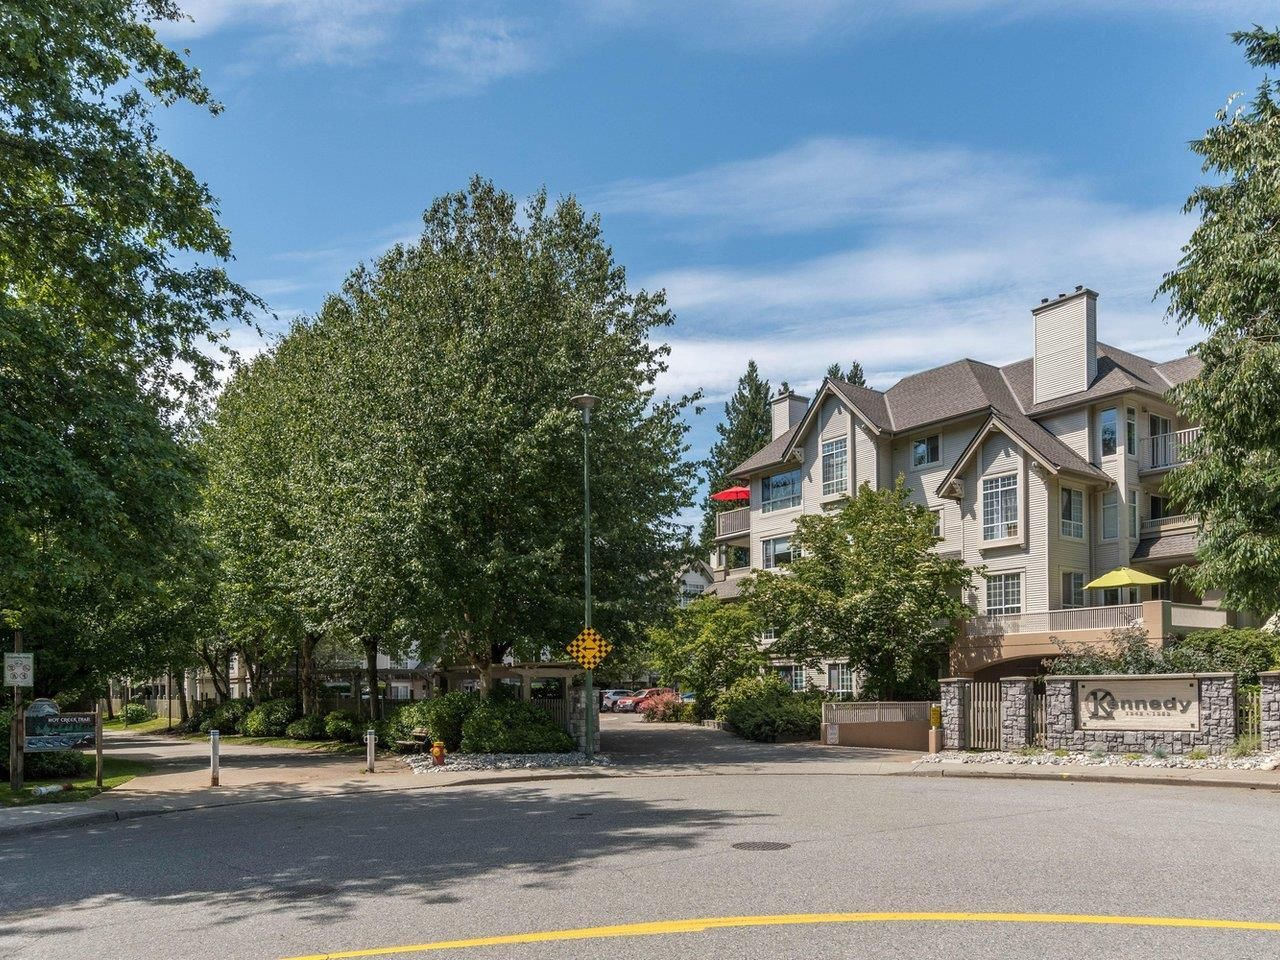 """Main Photo: 320 1252 TOWN CENTRE Boulevard in Coquitlam: Canyon Springs Condo for sale in """"The Kennedy"""" : MLS®# R2595291"""